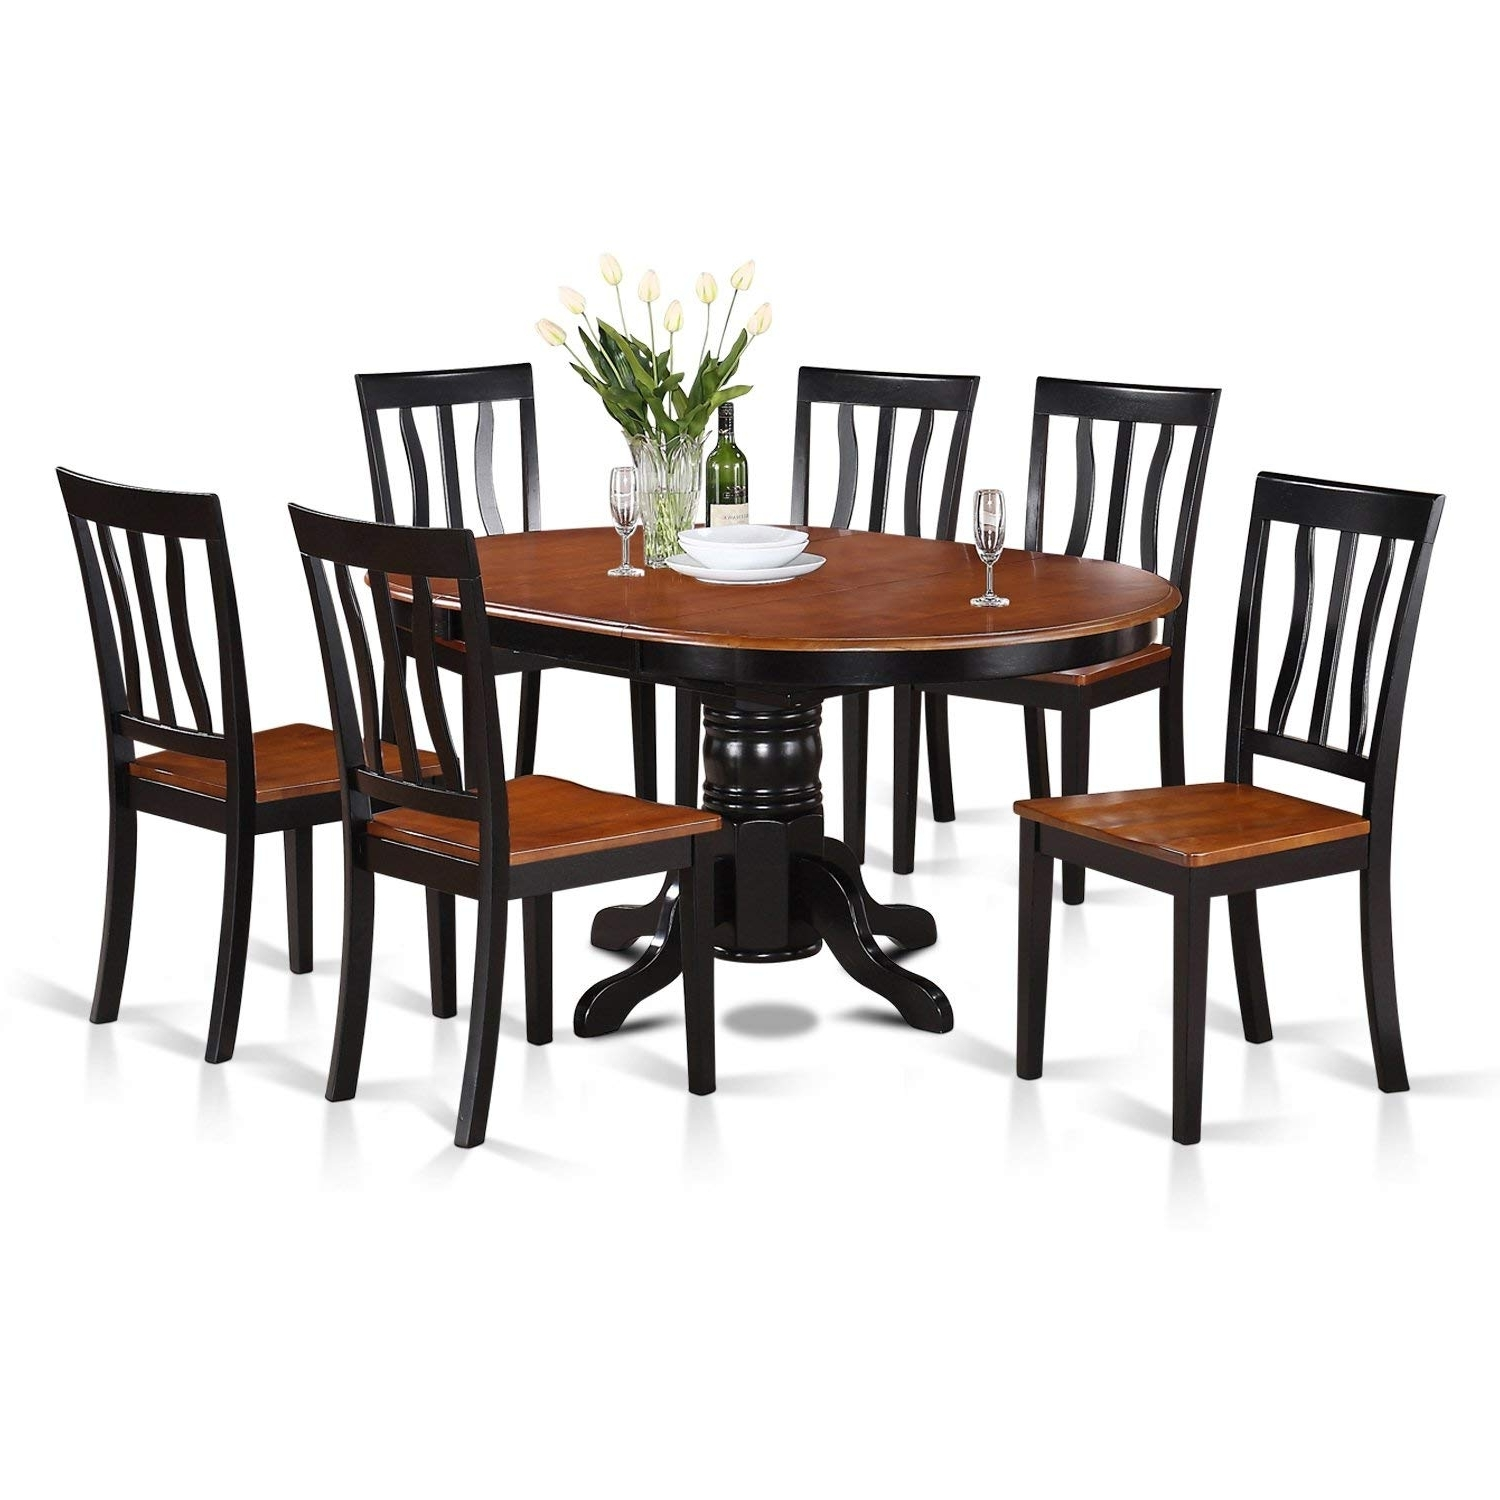 Wooden Dining Tables And 6 Chairs Within Favorite Amazon: East West Furniture Avat7 Blk W 7 Piece Dining Table Set (View 25 of 25)